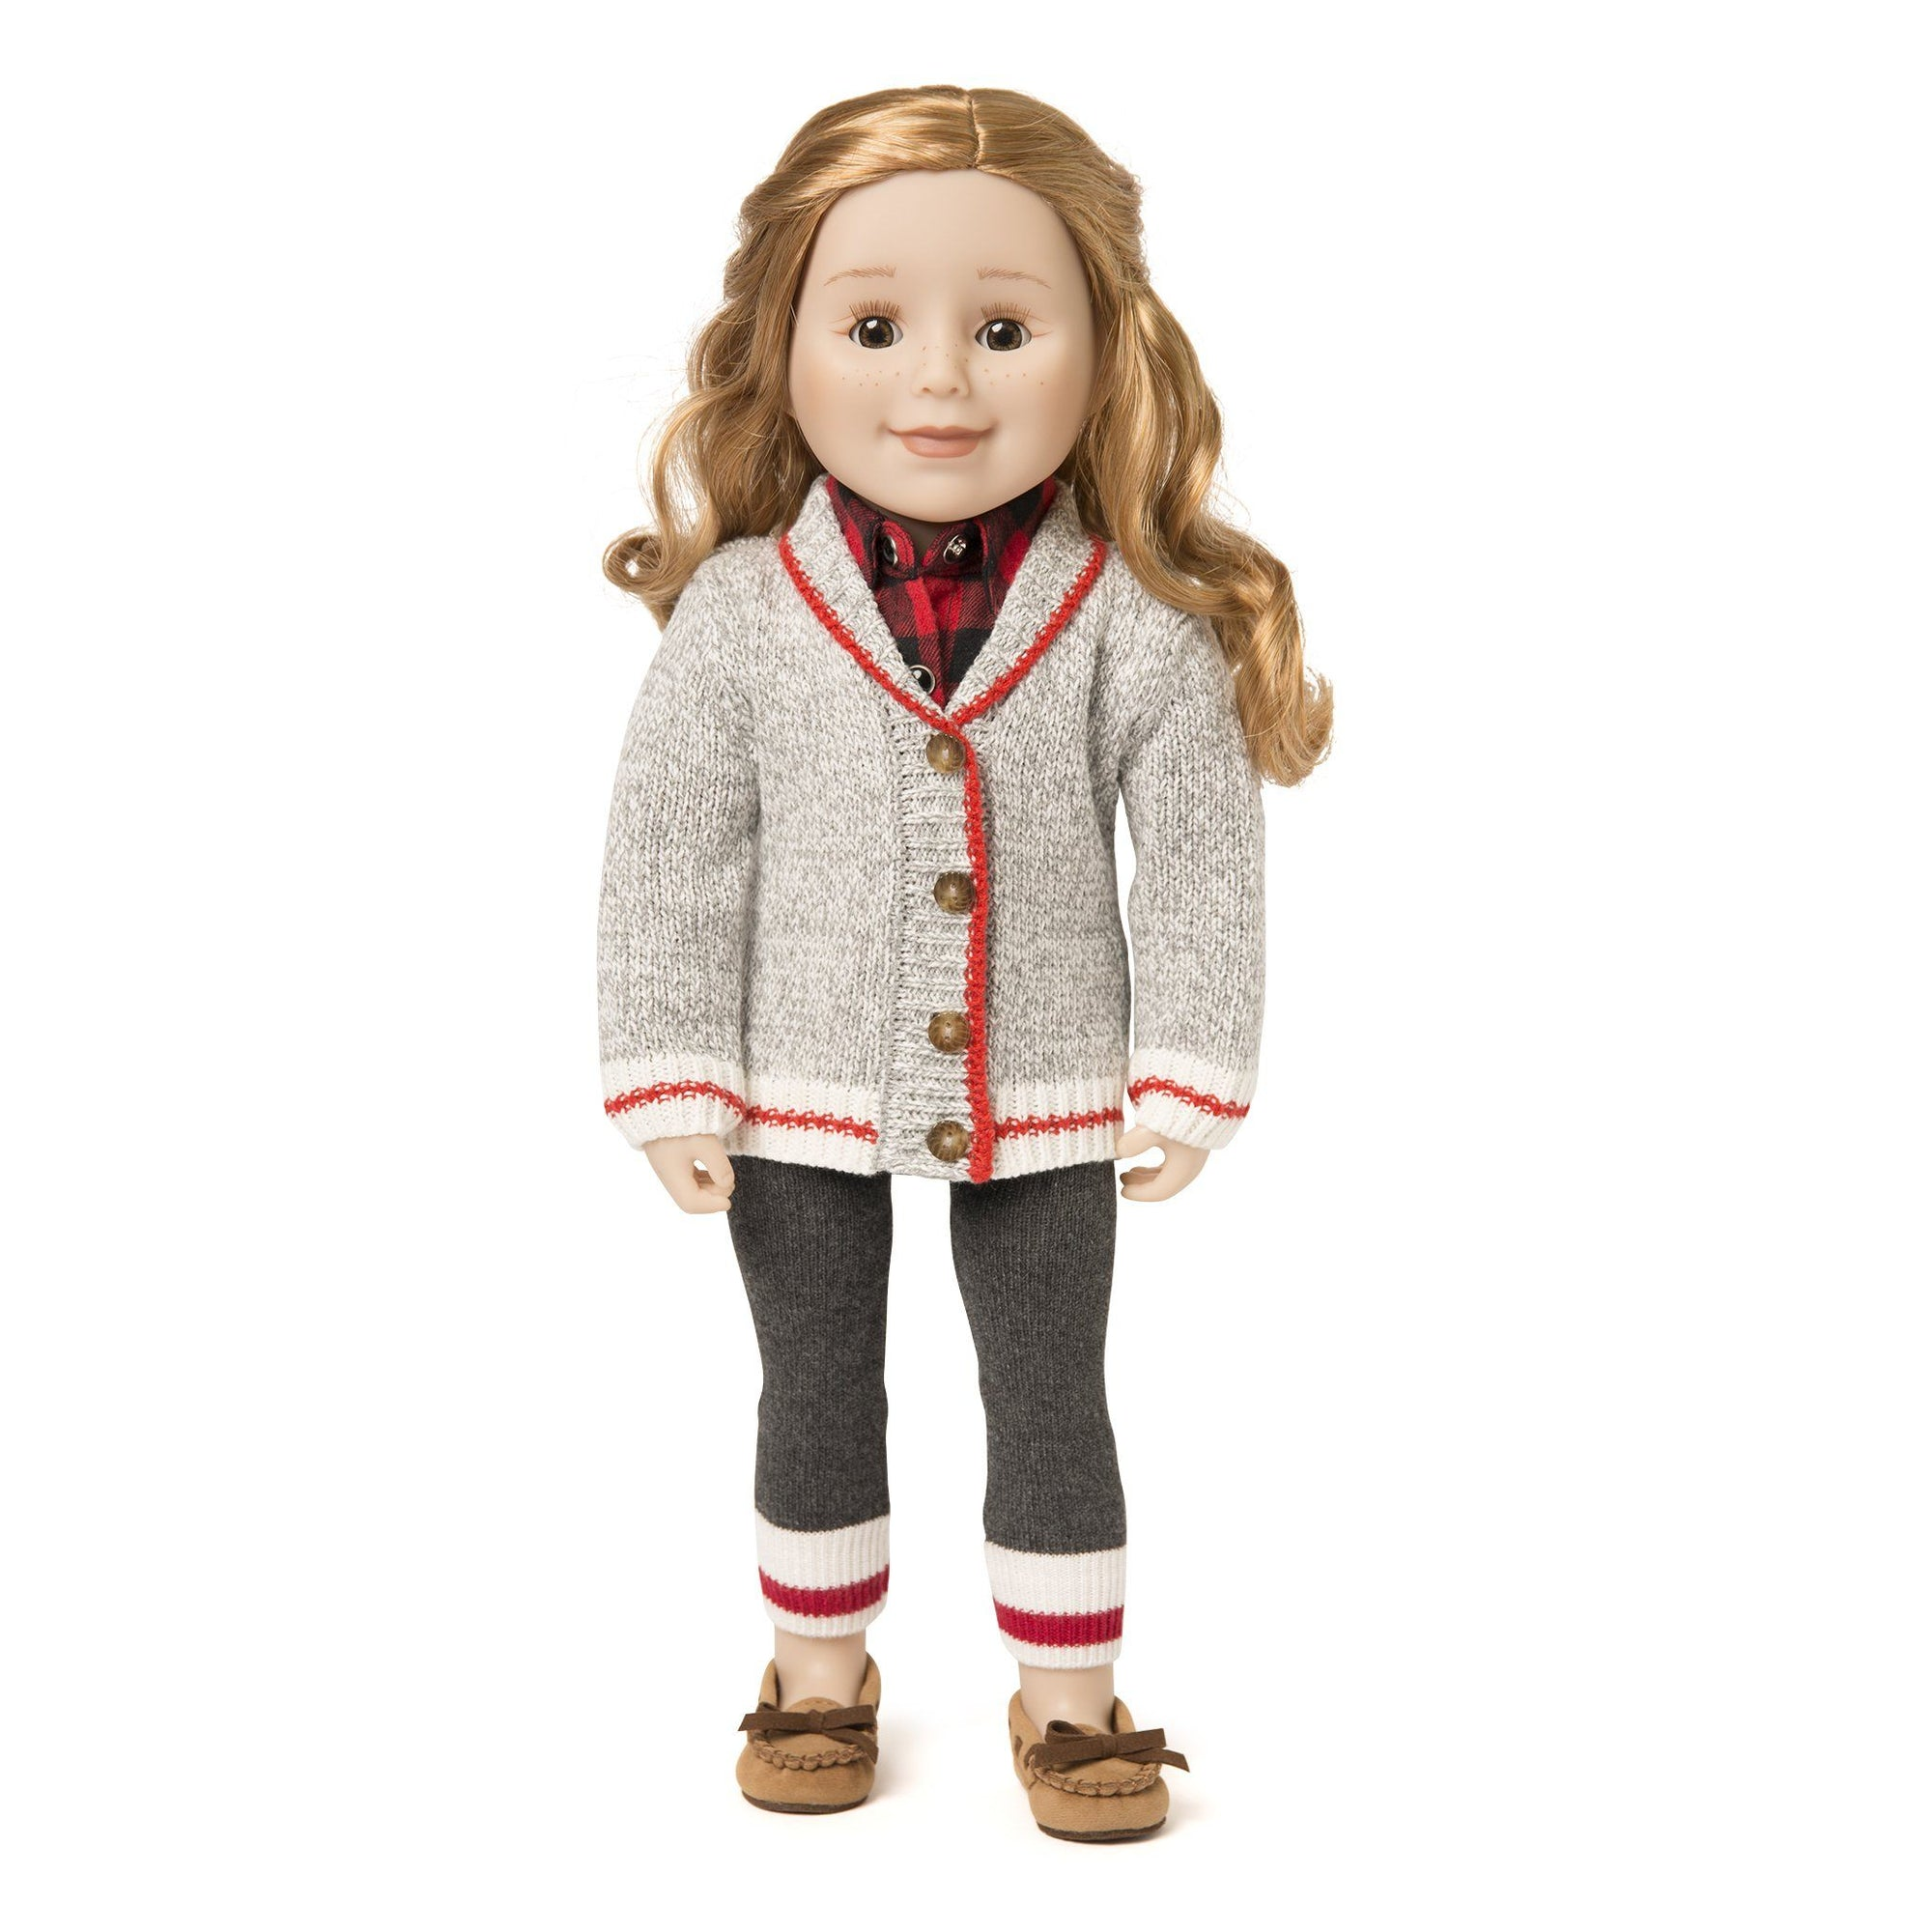 18 inch doll wearing Maplelea's Chalet Chic red and grey cardigan sweater